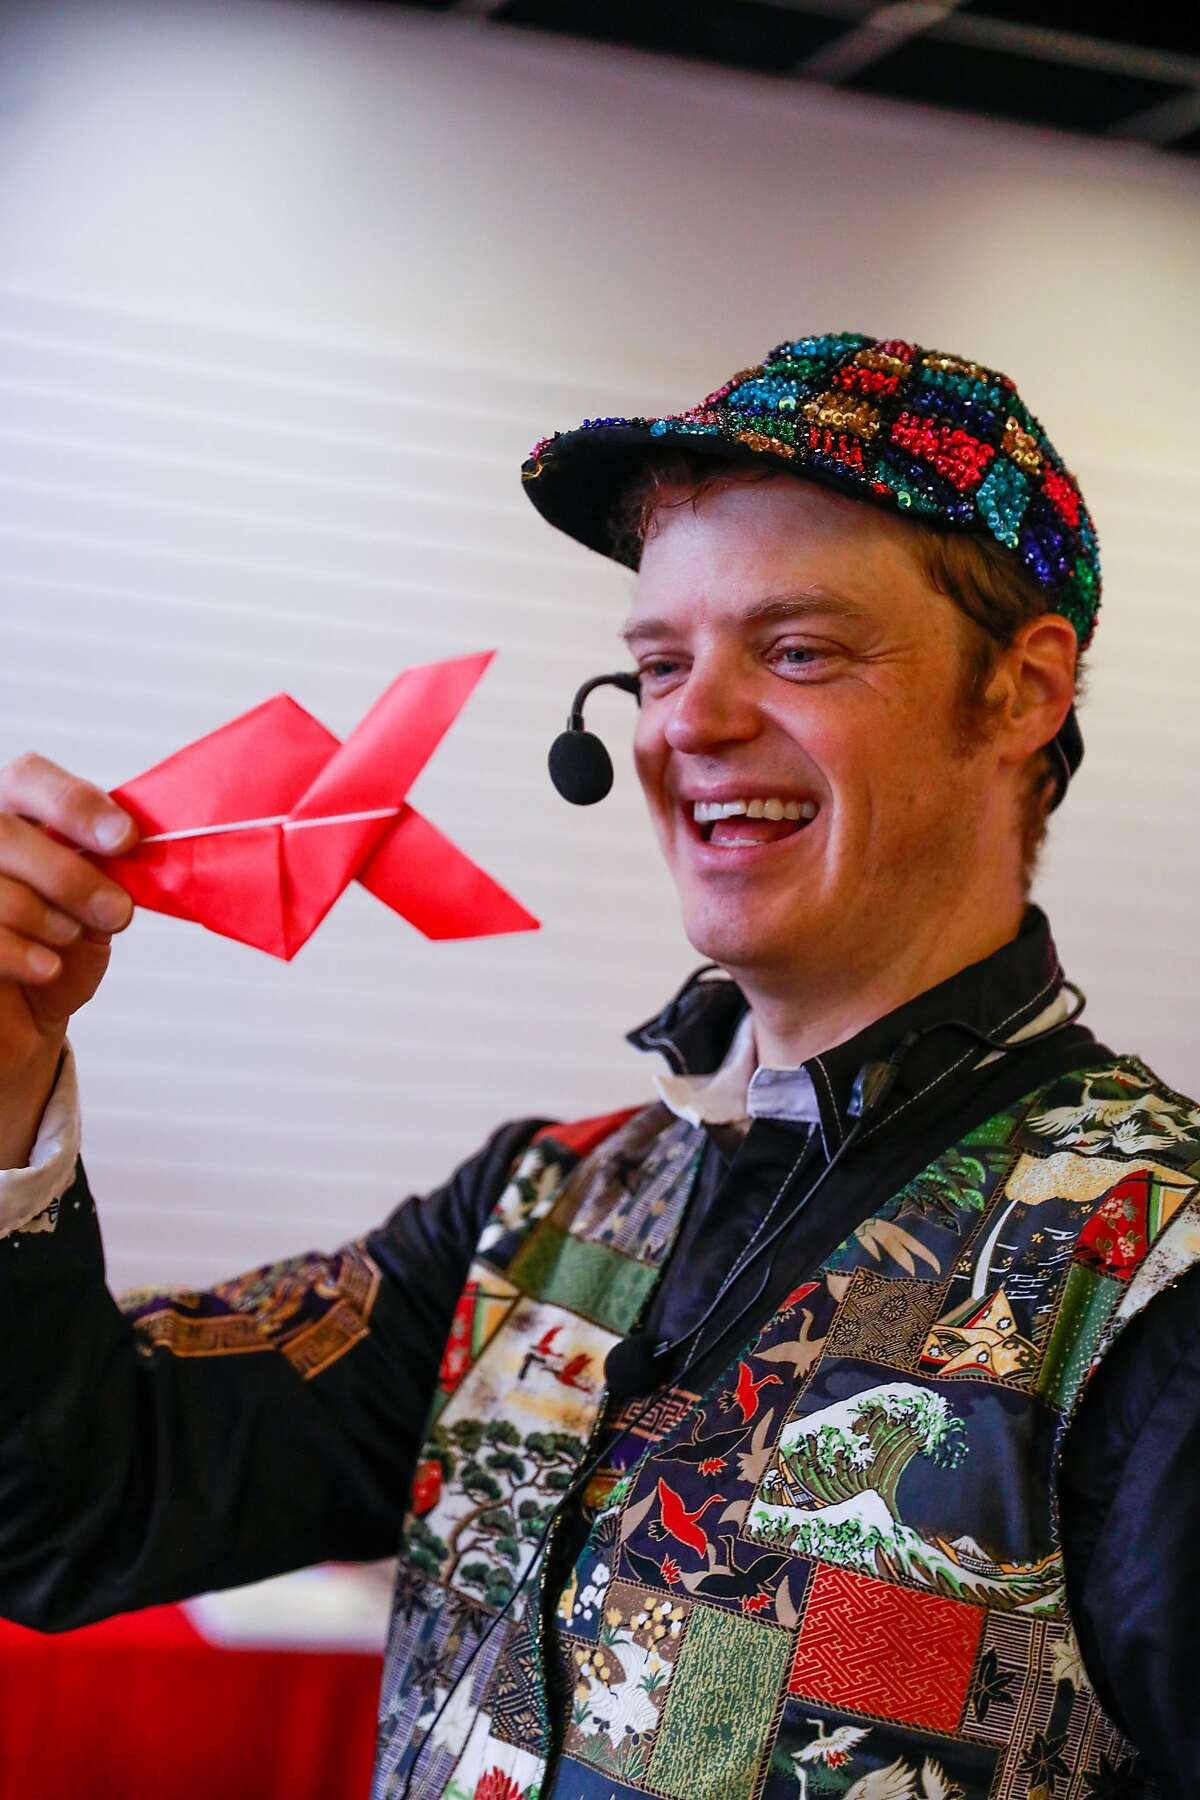 Famous origamist Jeremy Shafer teaches an origami class at the Origami Palooza in Japantown in San Francisco, California, on Sunday, Aug. 25, 2019.